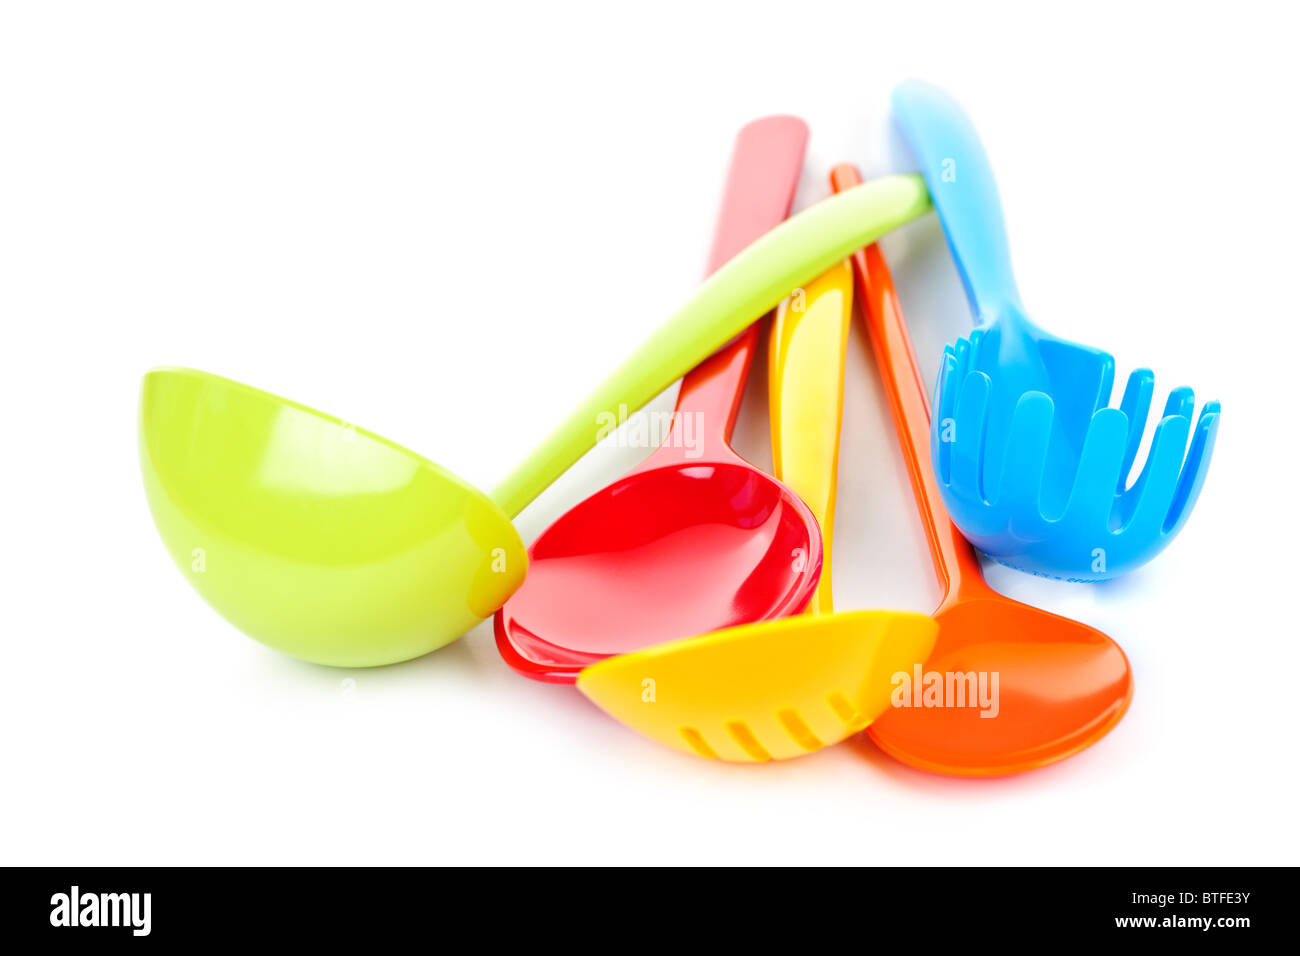 Various Colorful Plastic Kitchen Utensils On White Background